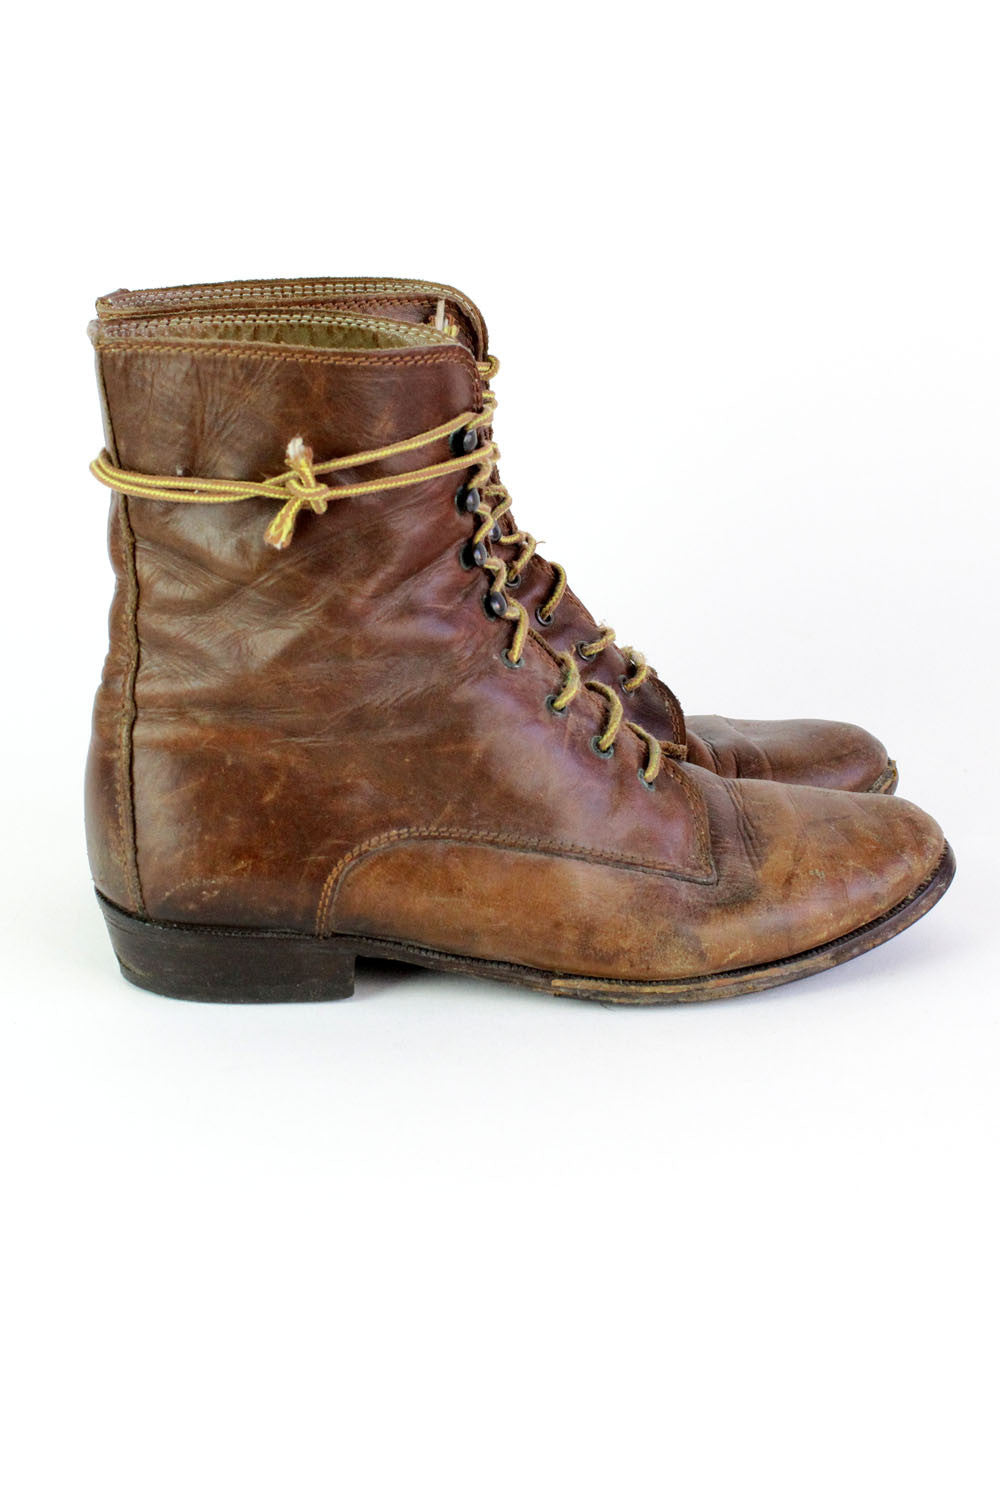 Lace Up Leather Boots 8